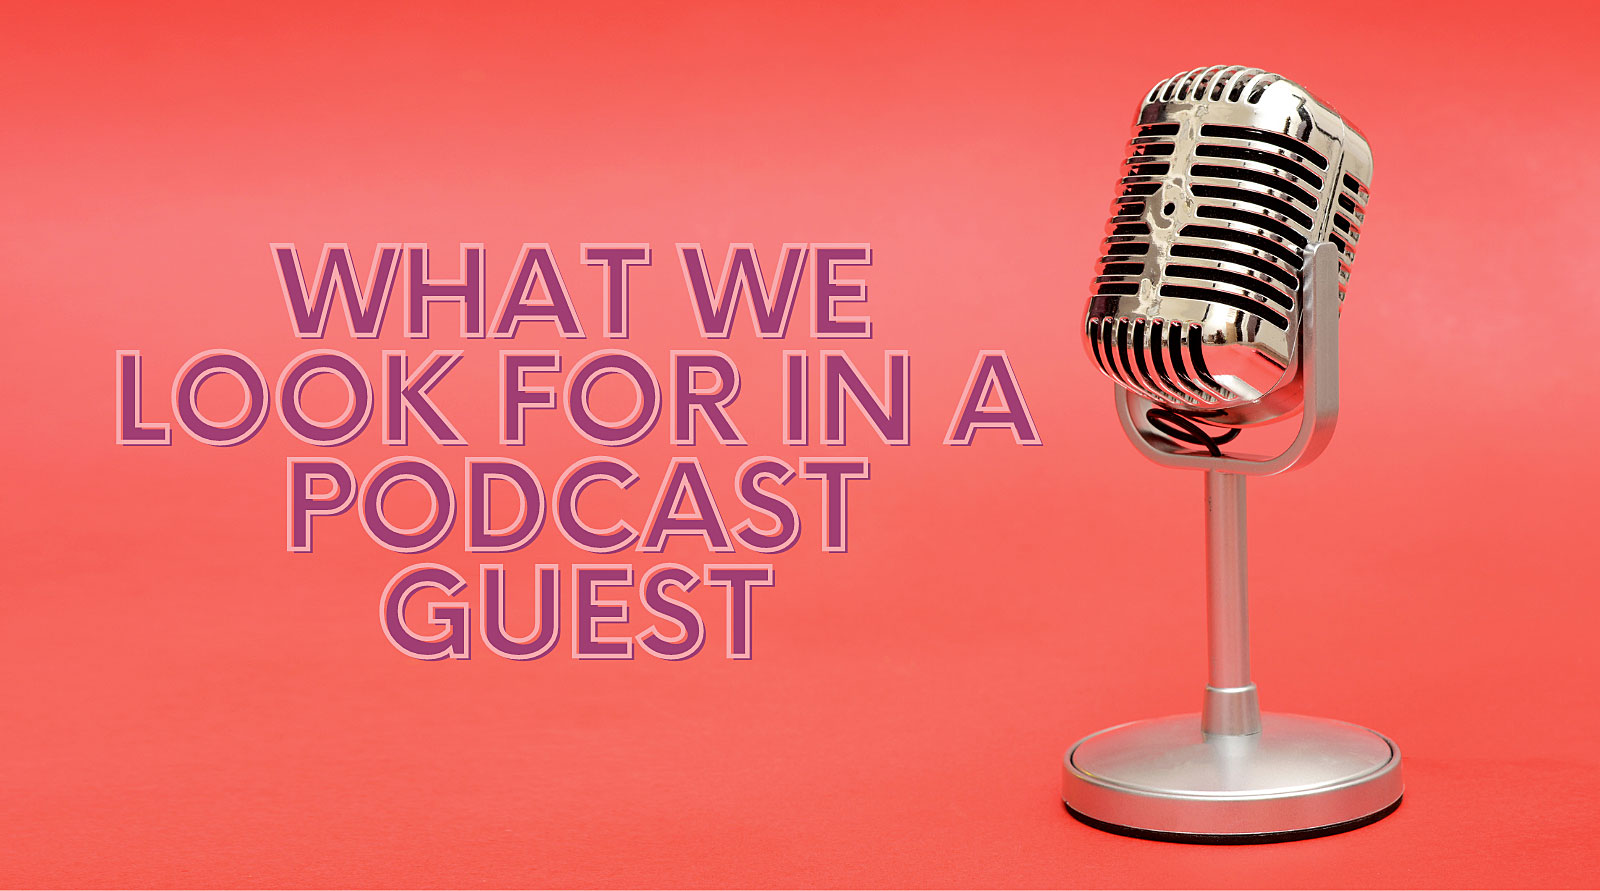 What we look for in a podcast guest